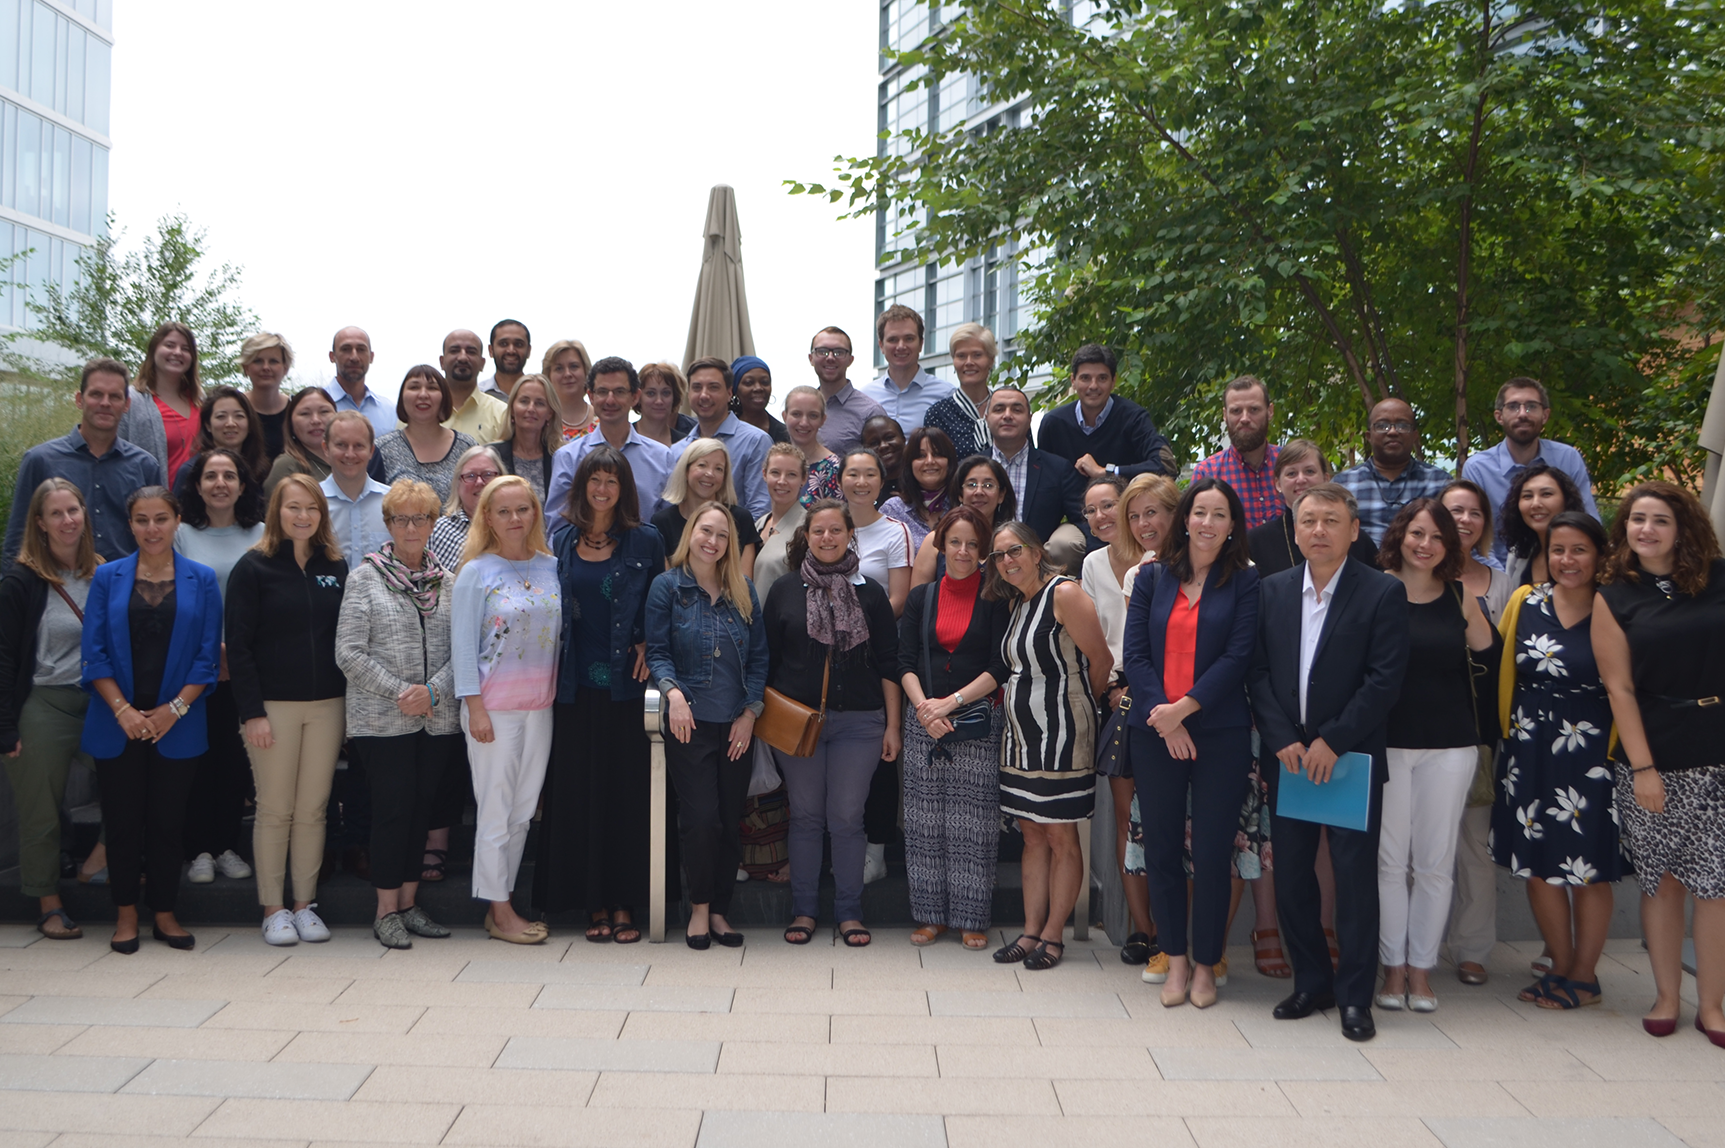 All staff photo from a 2019 ICNL Alliance retreat in Washington, DC (Photo: ICNL)